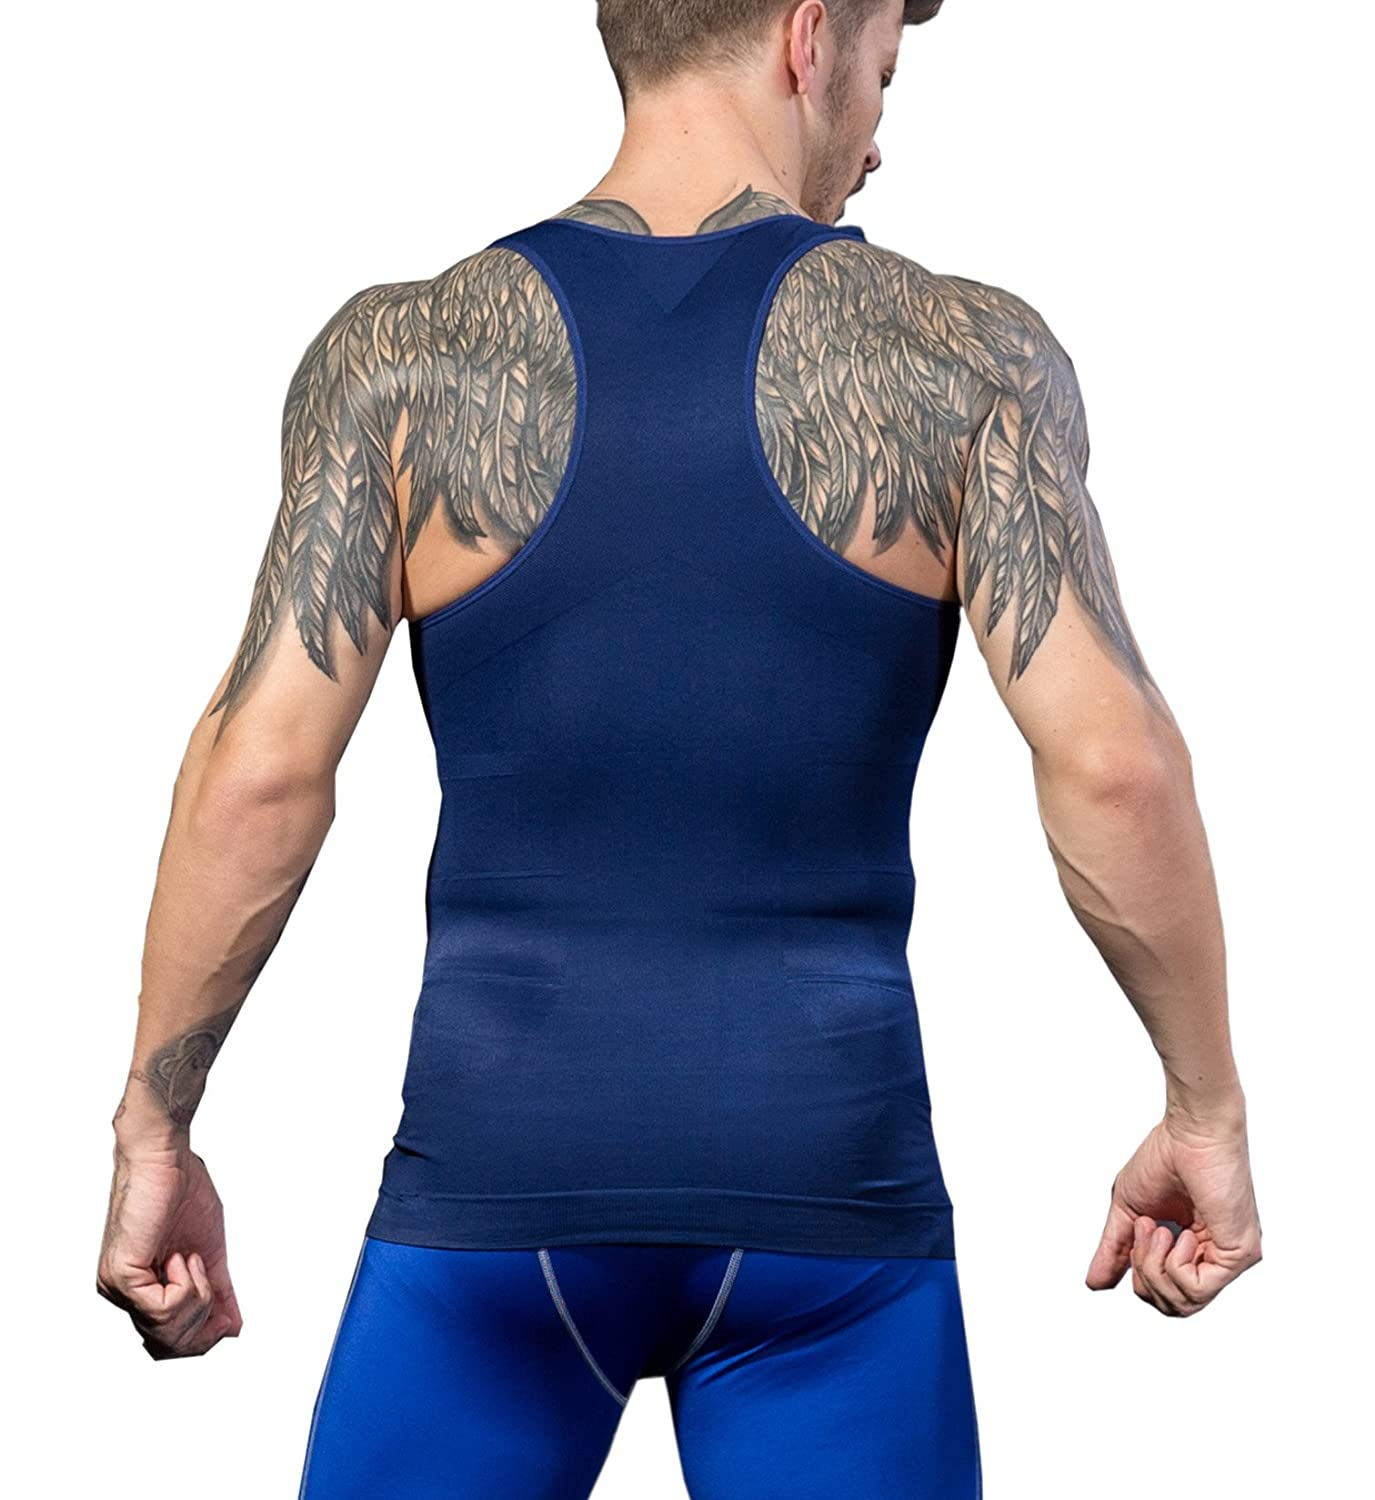 e752185ebcb NEW DESIGN- Y-BACK Design Body Shaper Compression Vest Shirt.Which is Back  cross design